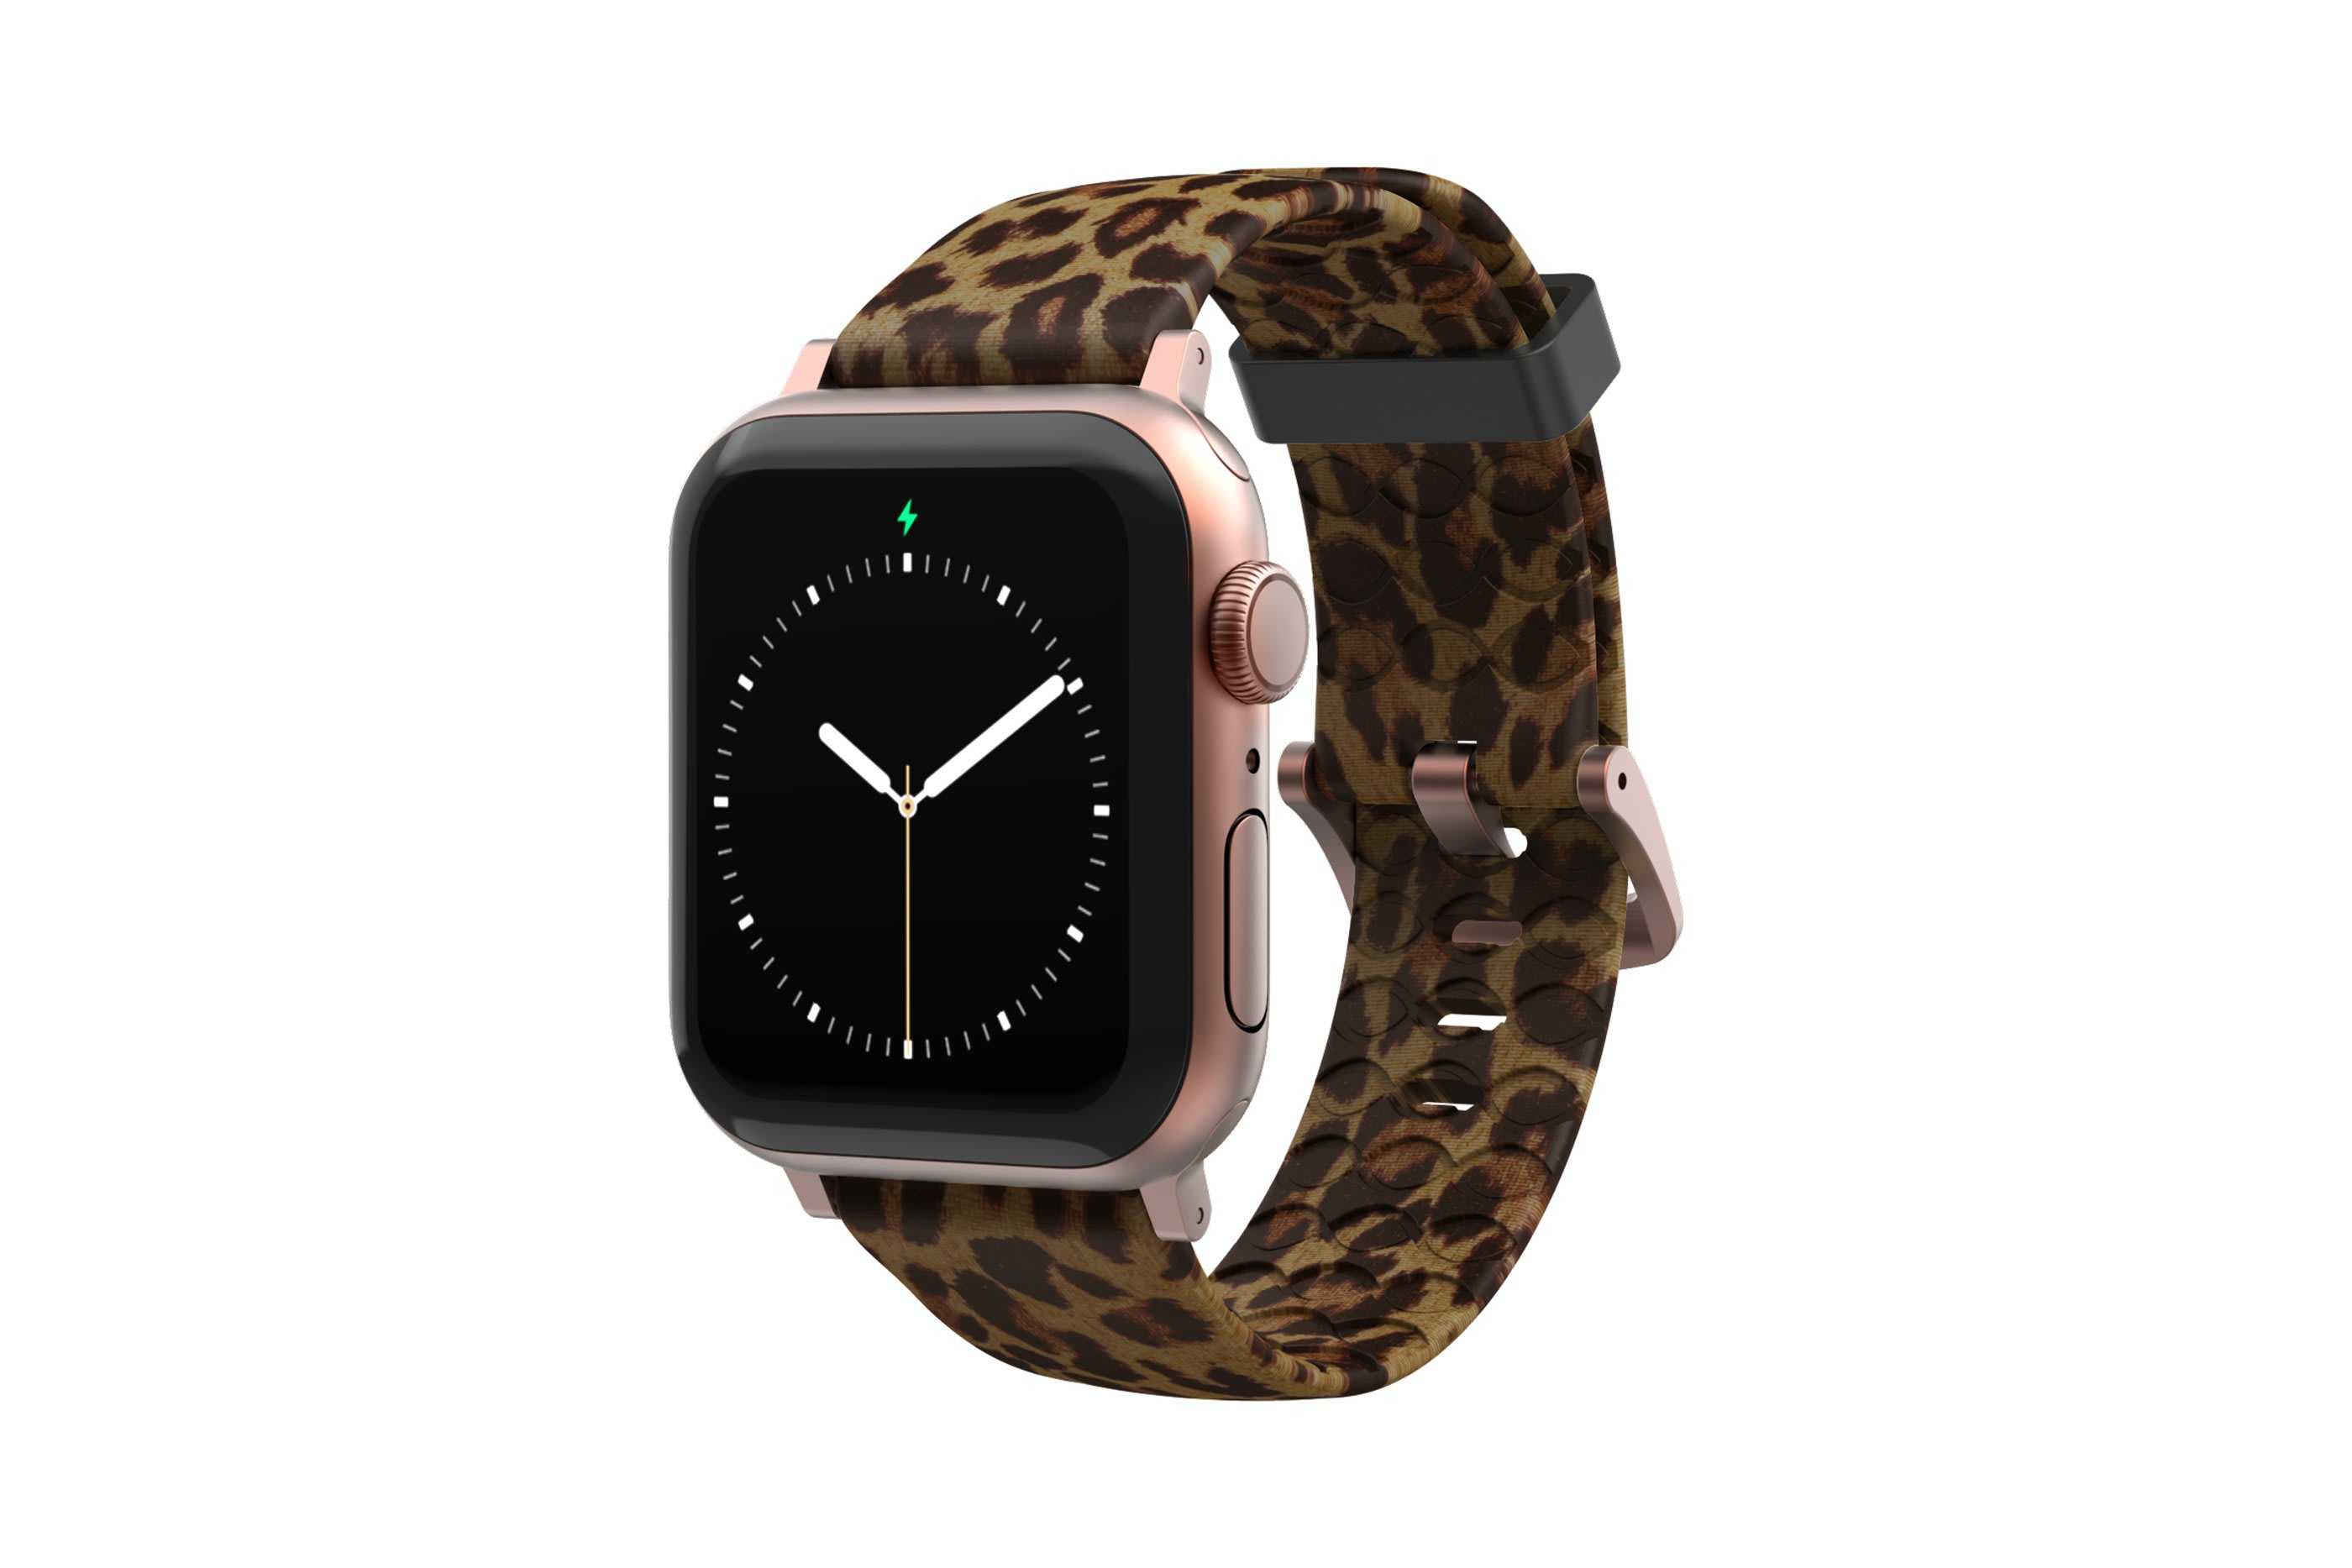 Leopard Apple Watch Band with rose gold Hardware viewed front on